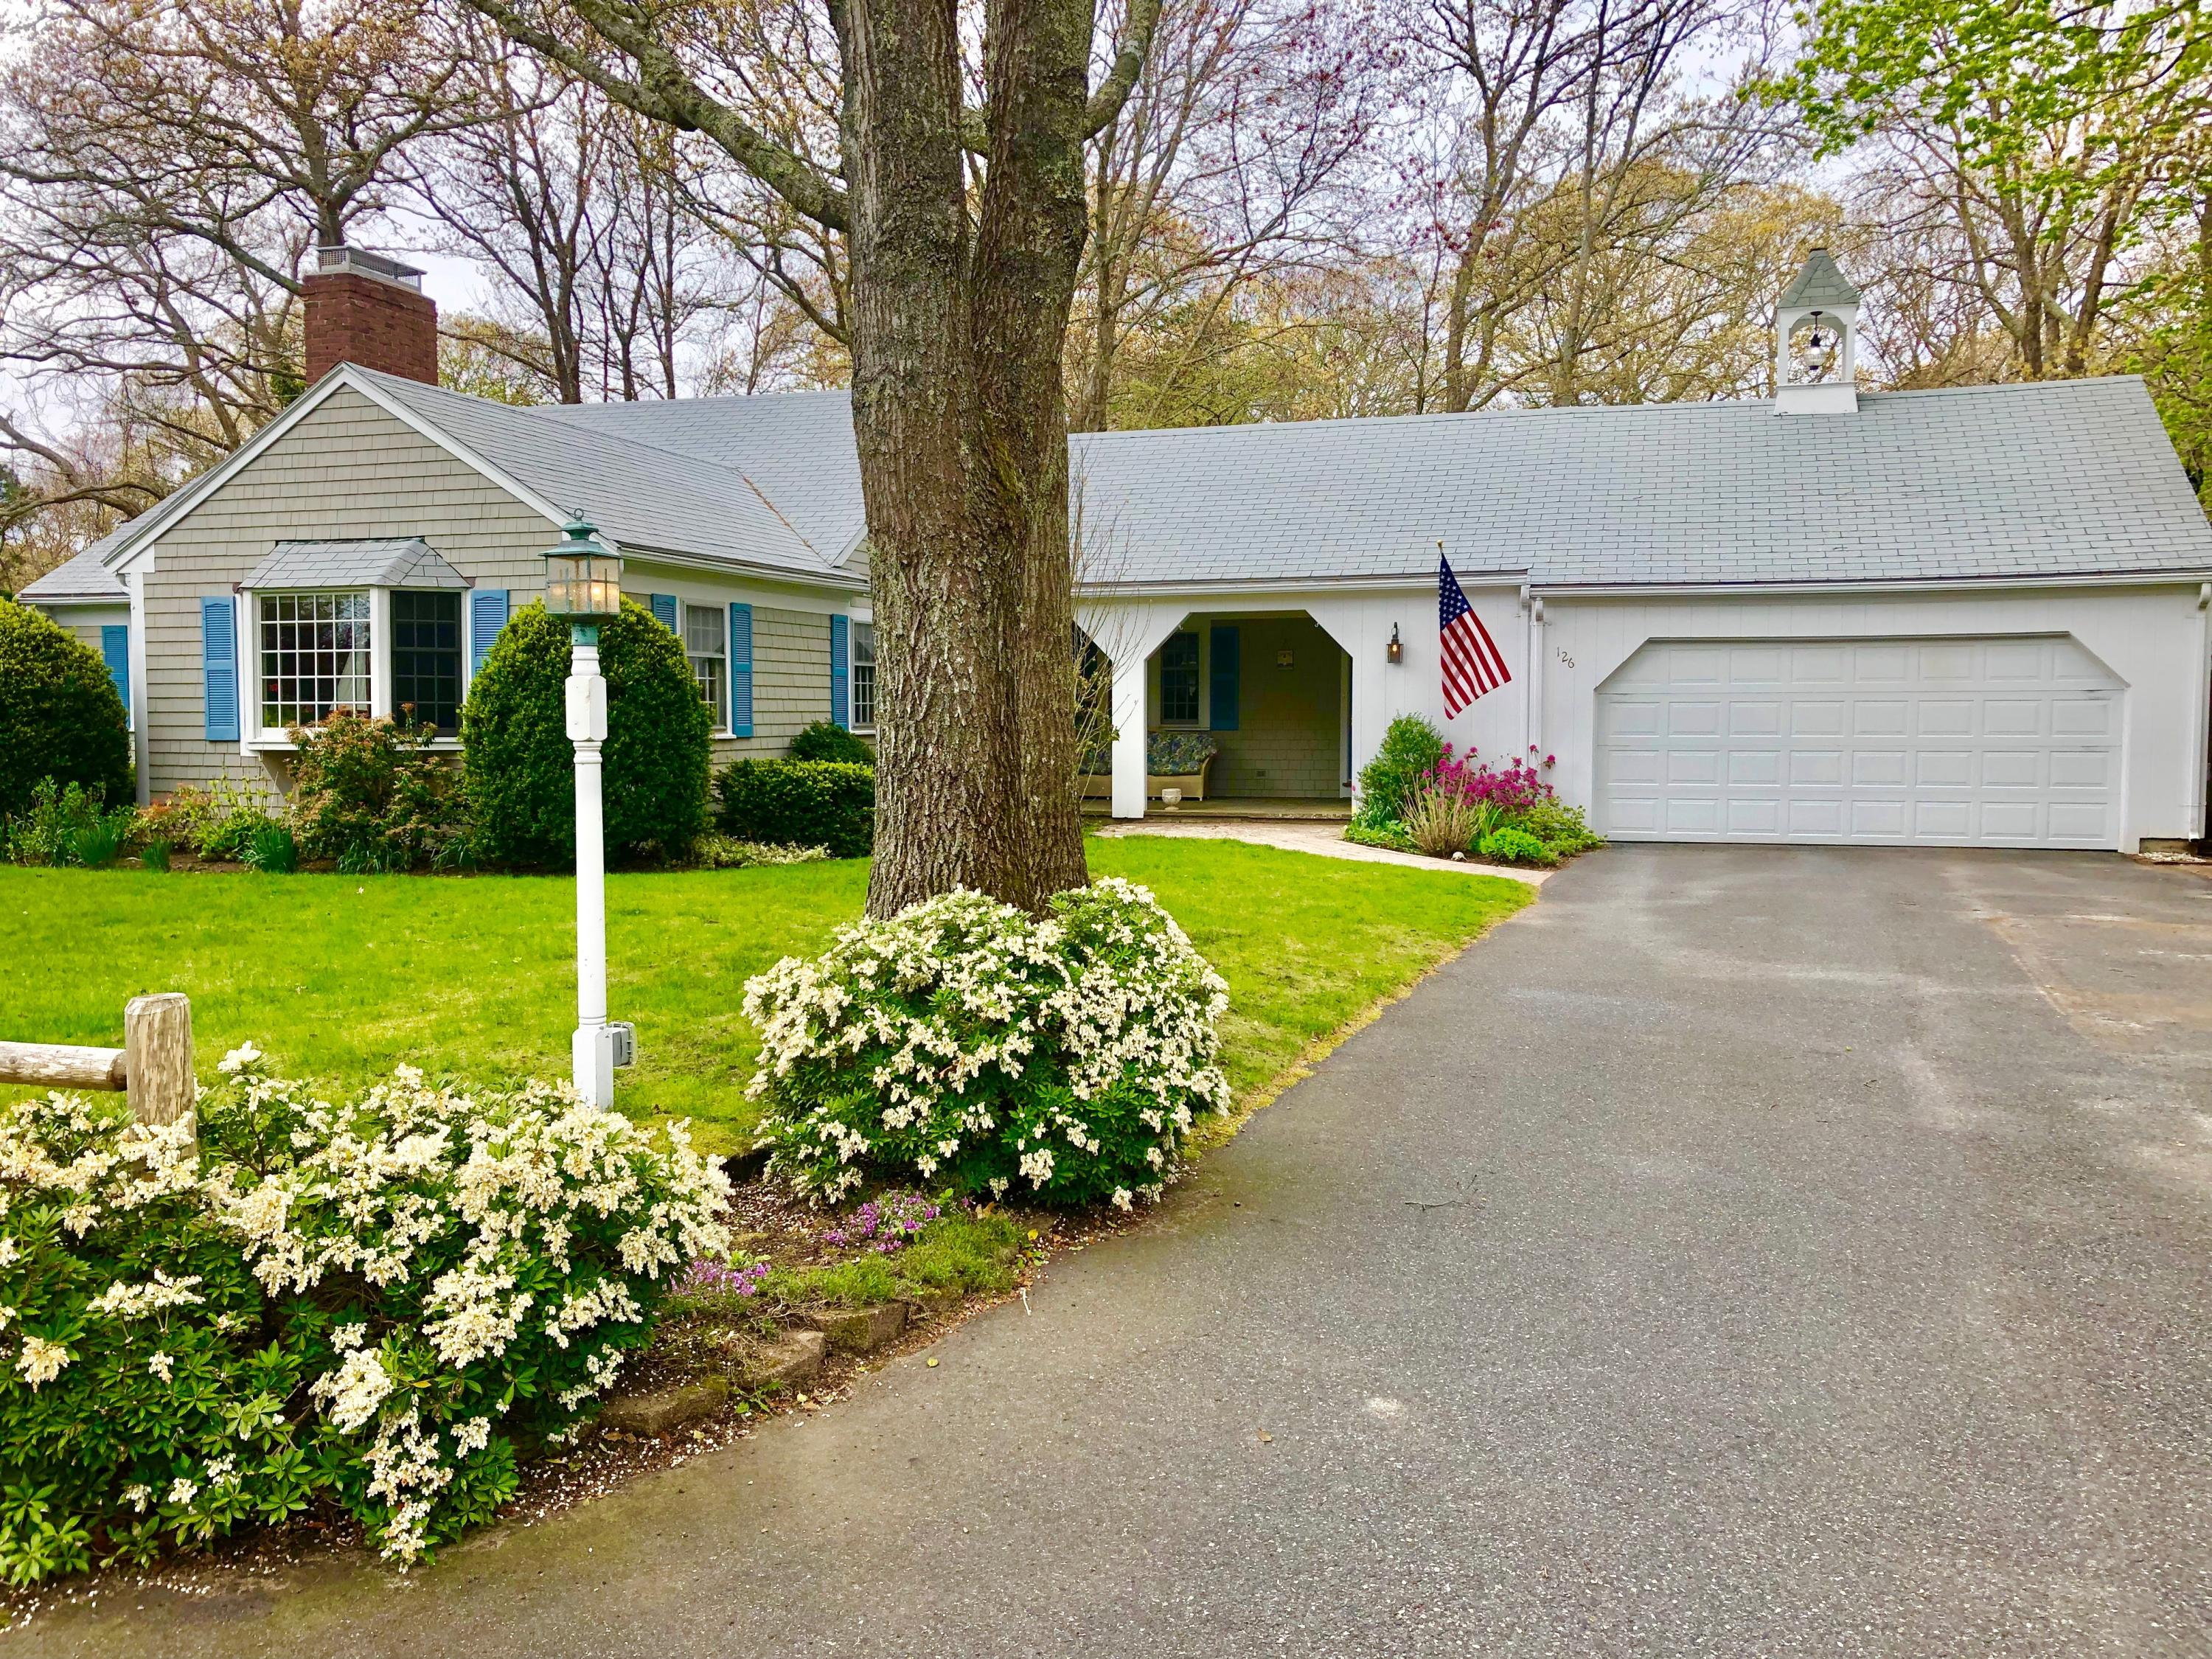 126 Oak Hill Road, Barnstable, MA 02601, Hyannis | Jack Conway